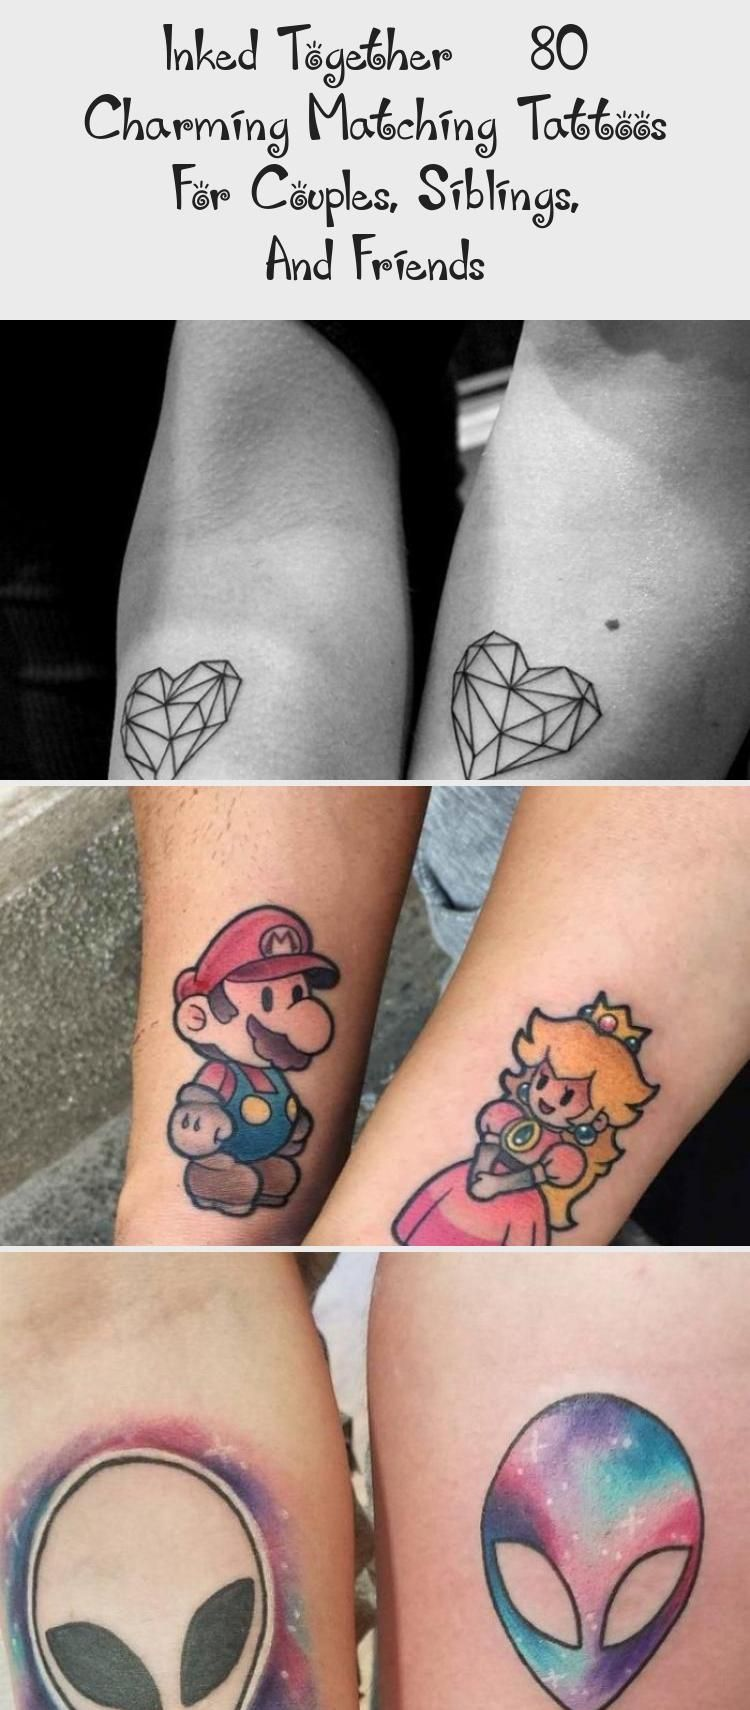 Inked Together 80 Charming Matching Tattoos For Couples